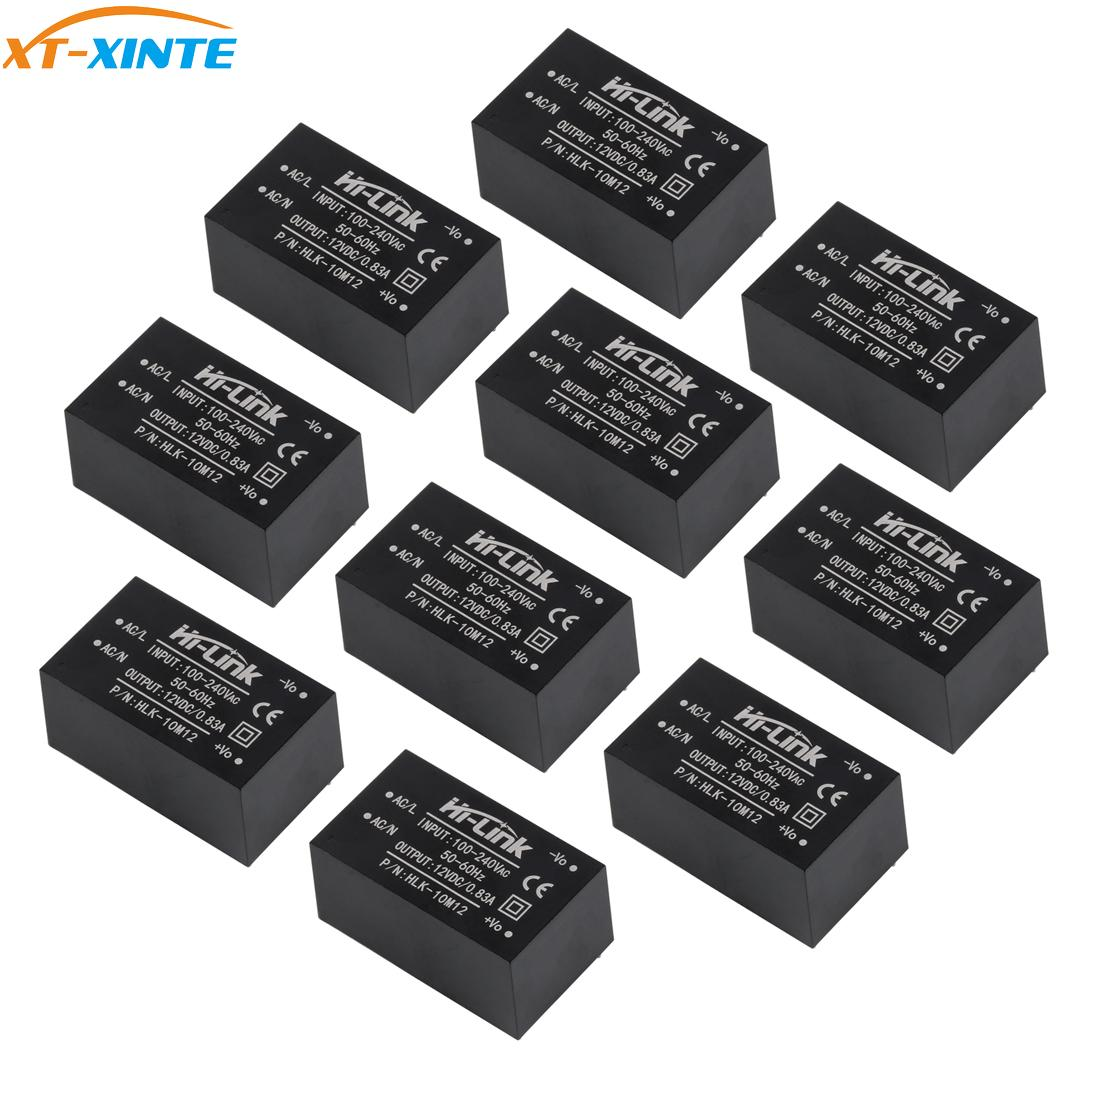 10pcs HLK-PM01 HLK-5M05 10M05 HLK-2M05 AC DC <font><b>220V</b></font> to 5V/3.3V/<font><b>12V</b></font> mini <font><b>power</b></font> <font><b>supply</b></font> intelligent household switch <font><b>power</b></font> <font><b>module</b></font> image